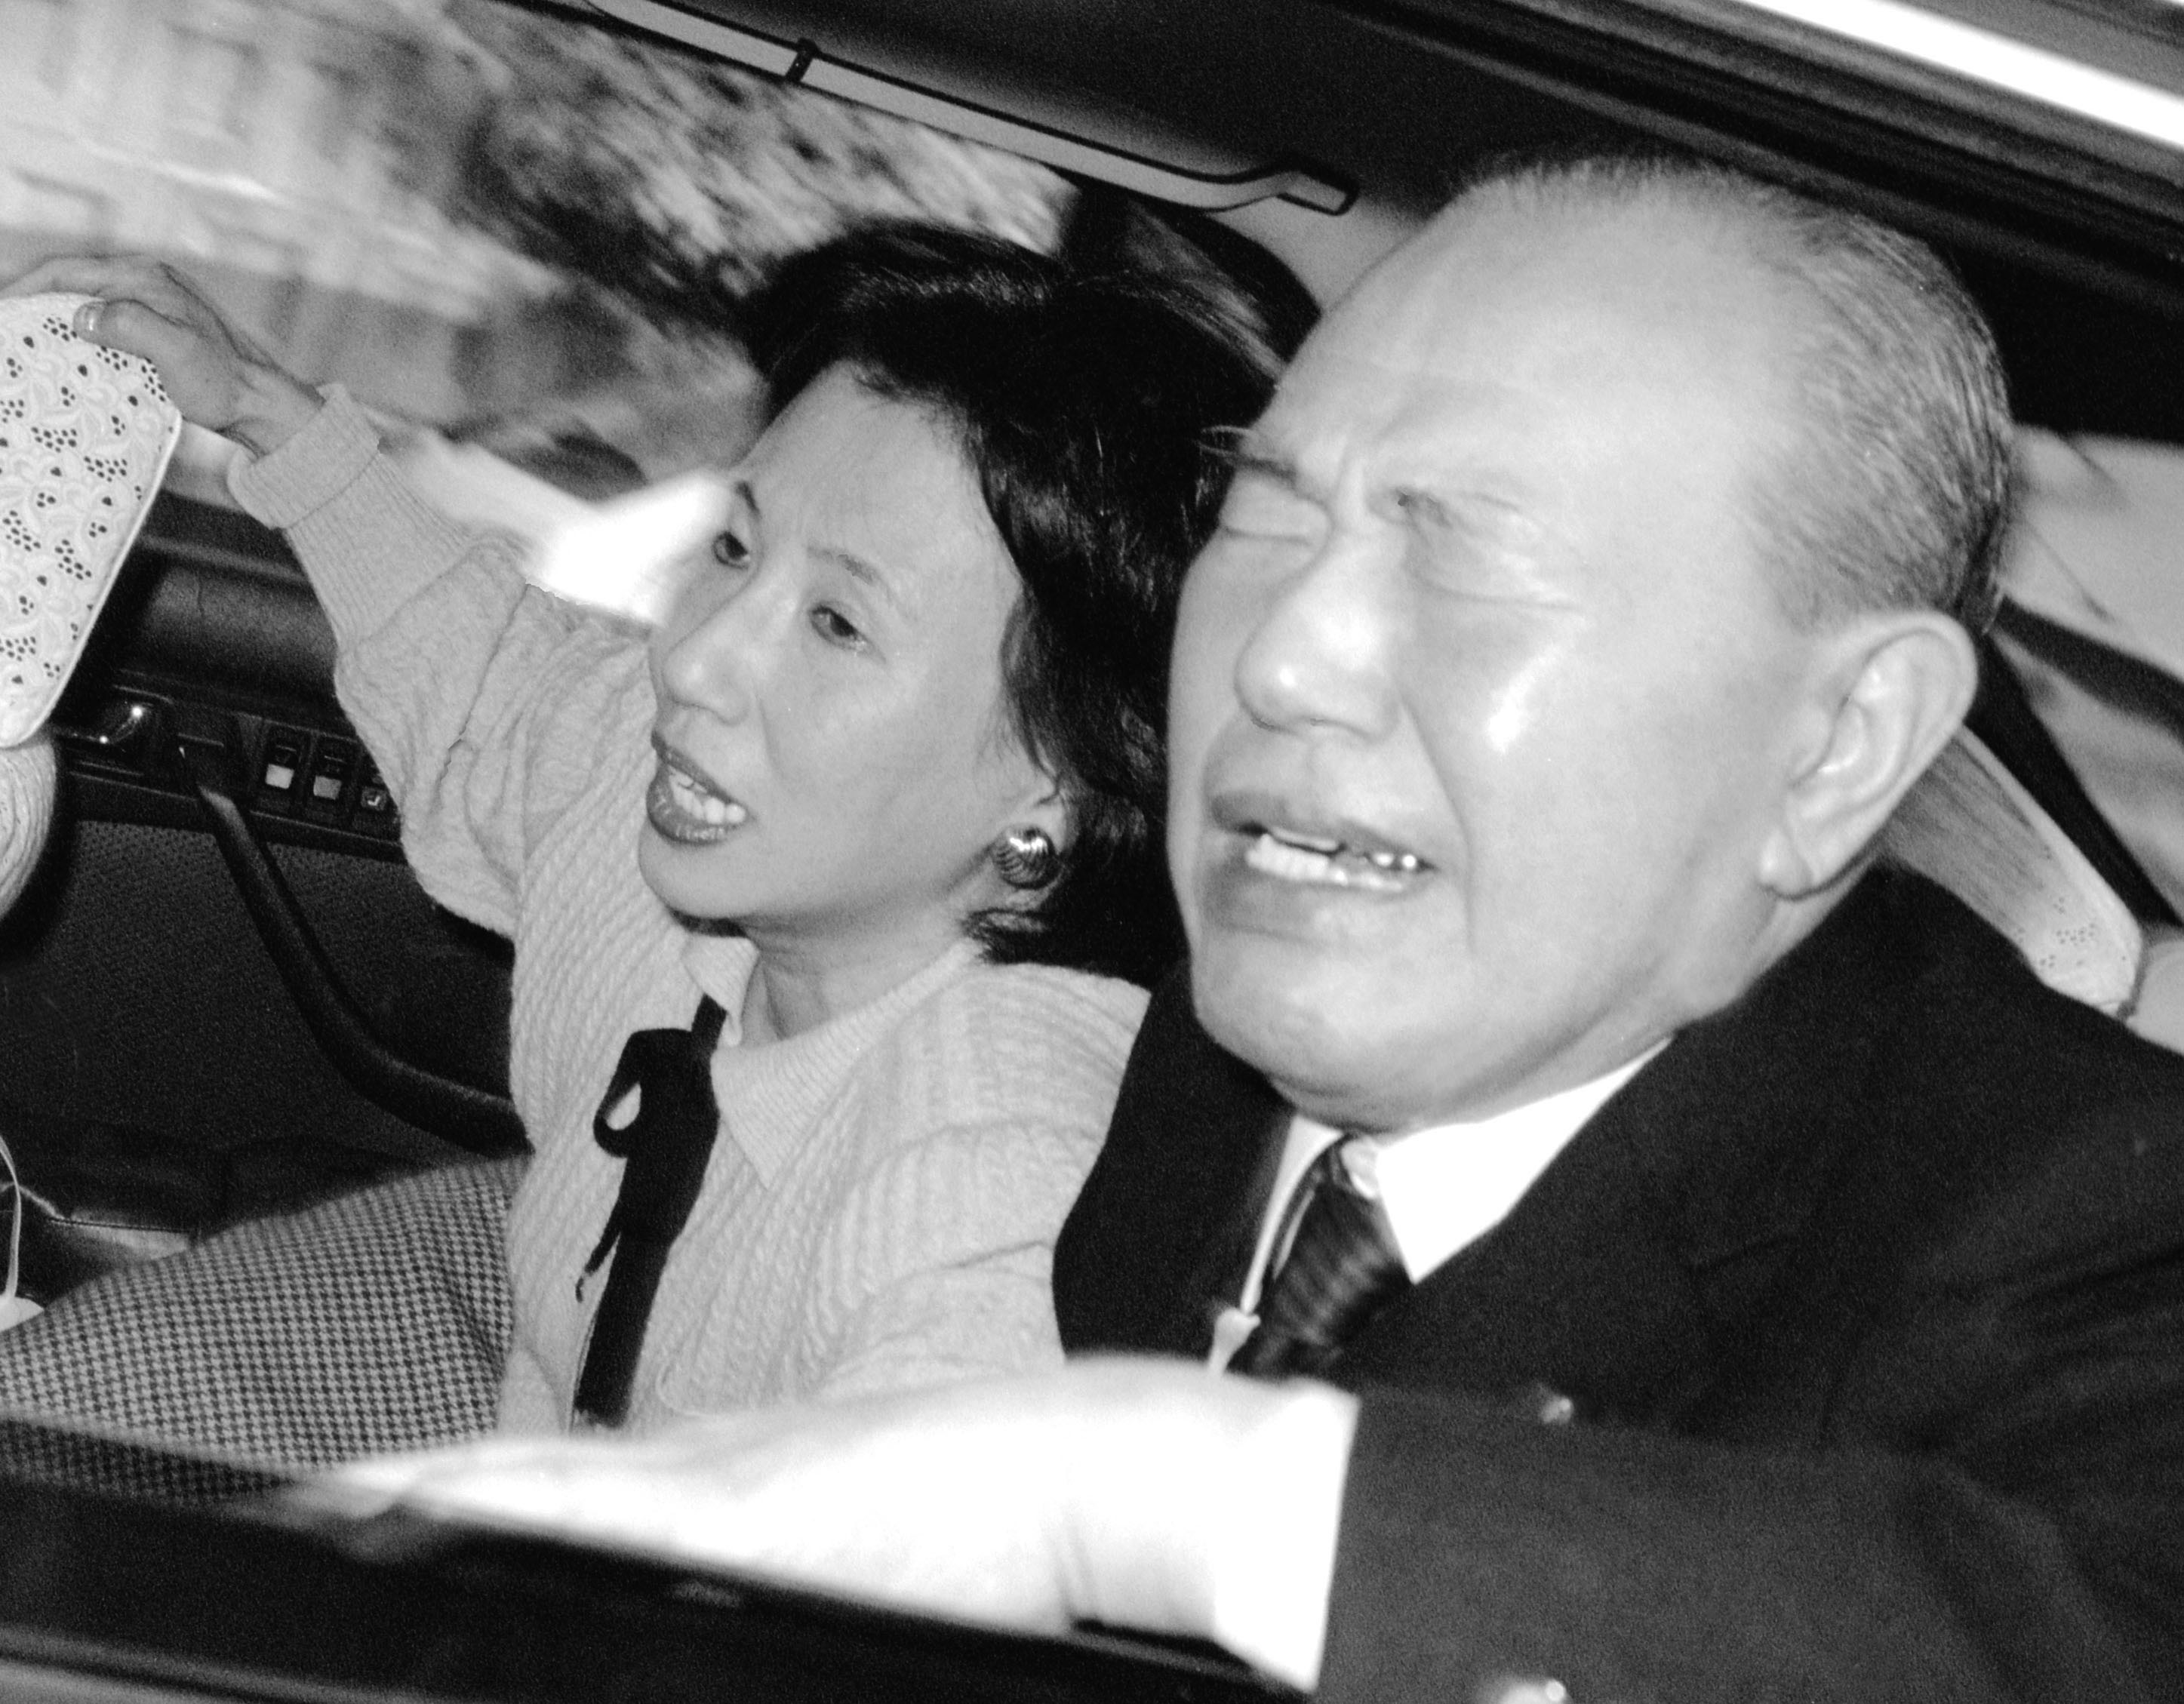 The 'Genius': Former Prime Minister Kakuei Tanaka makes an emotional homecoming after his resignation in 1989. Tanaka's downfall was caused by his involvement in the 1970s Lockheed bribery scandal, and it was foreign press attention that made the former prime minister's actions impossible to ignore in Japan. Former Tokyo Gov. Shintaro Ishihara has recently written a first-person 'biography' of Tanaka called 'Tensai' ('Genius'). | KYODO